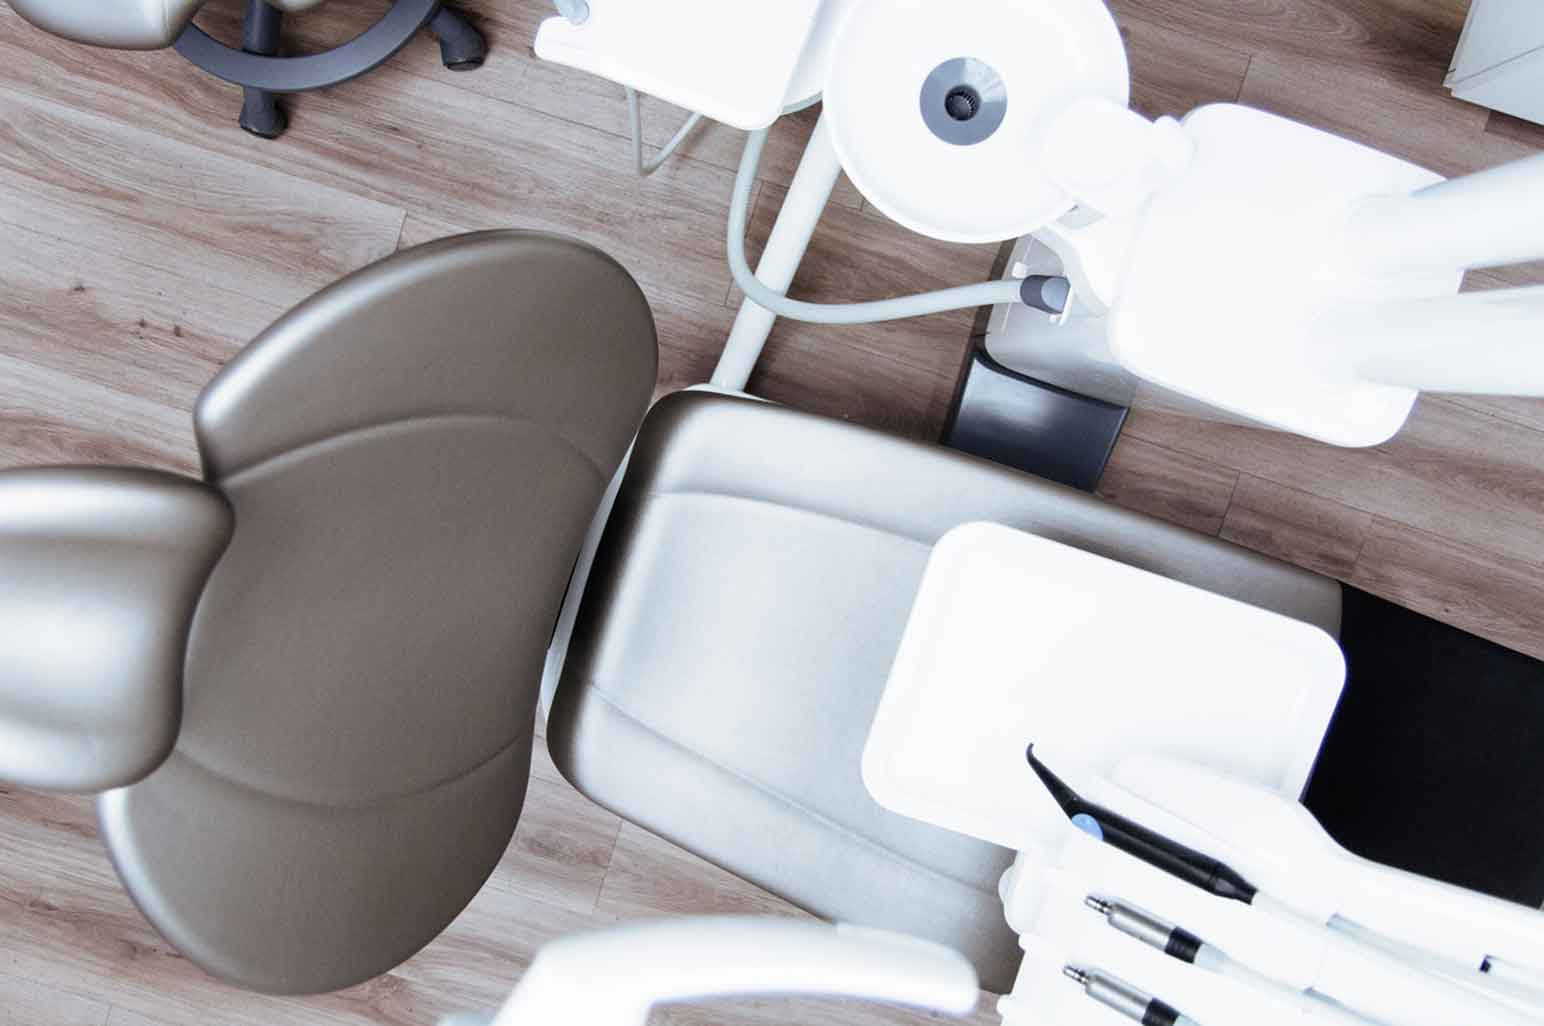 Easy Tips That Will Help Take Care Of Your Sensitive Teeth While You're Traveling